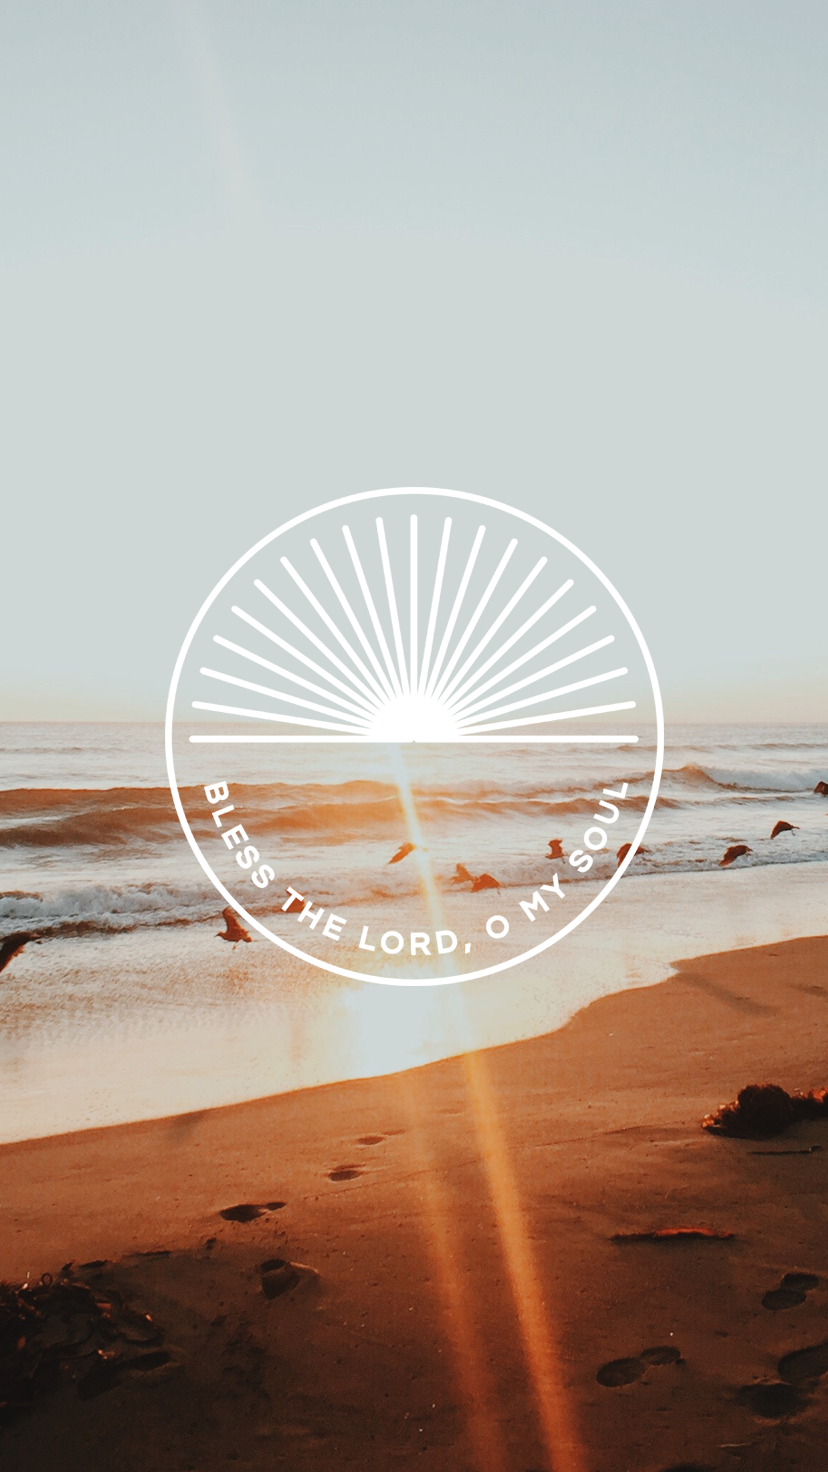 Bless-the-Lord-iPhone-Wallpaper.png